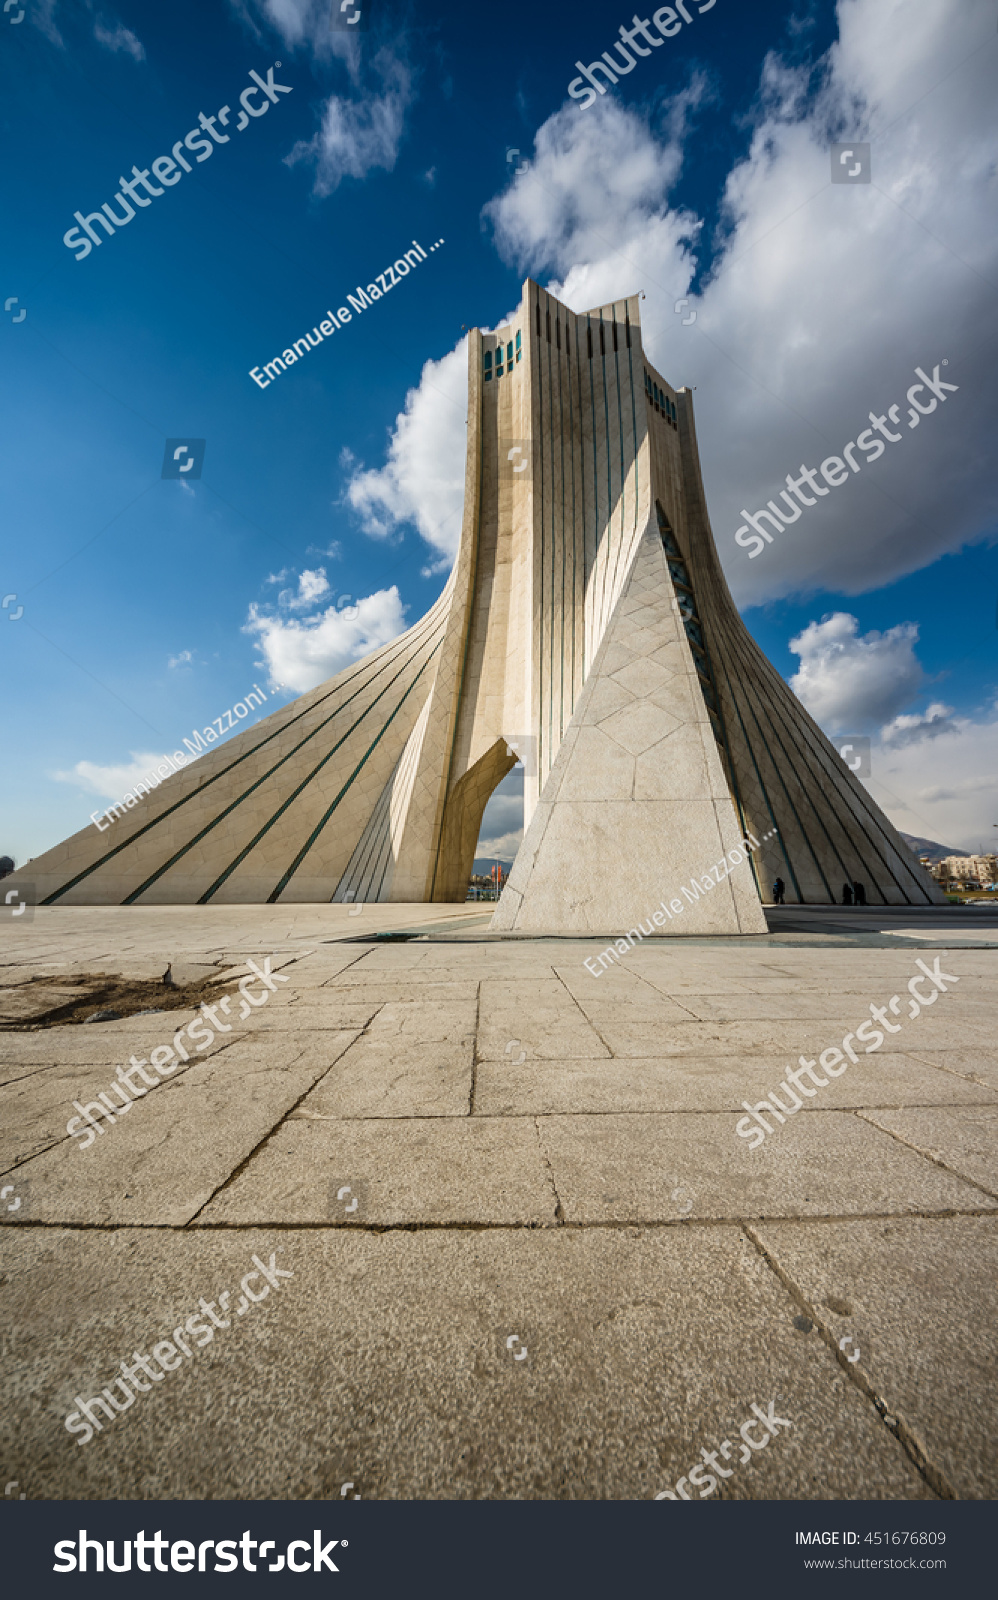 Teheran Iran February 2016 Azadi Tower Stock Photo 451676809 ...